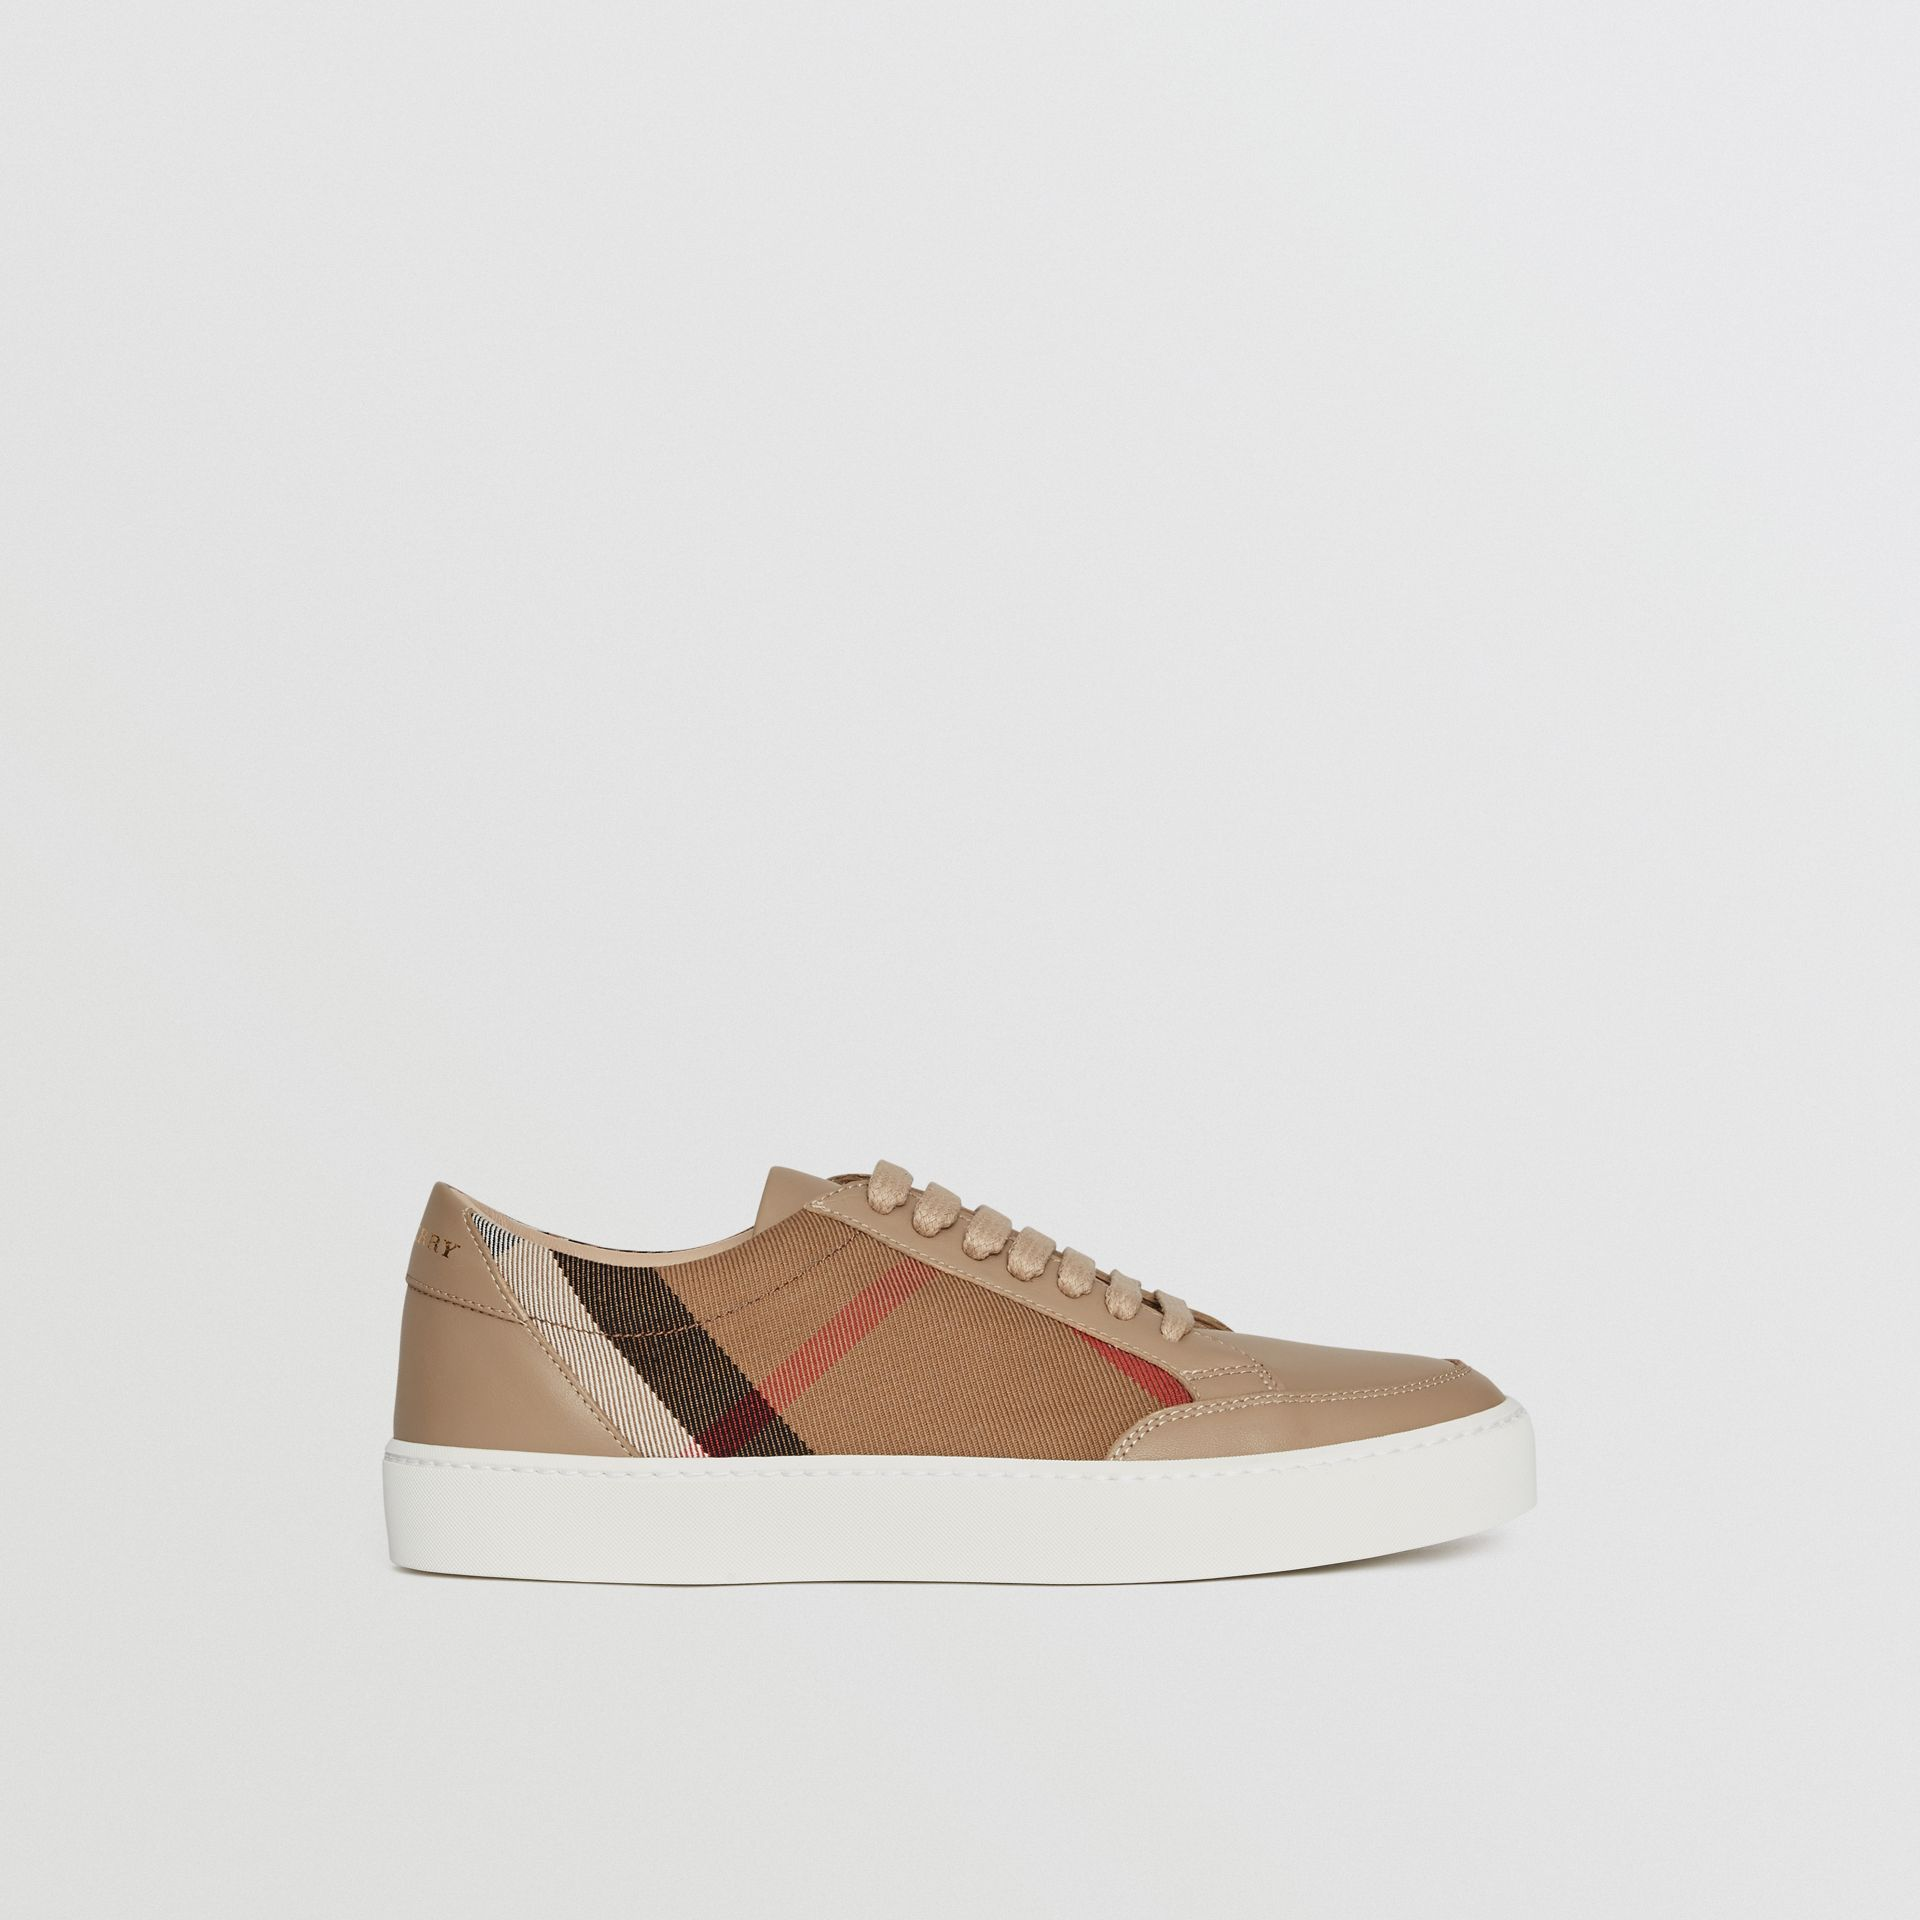 Check Detail Leather Sneakers in House Check/ Nude - Women | Burberry United States - gallery image 5